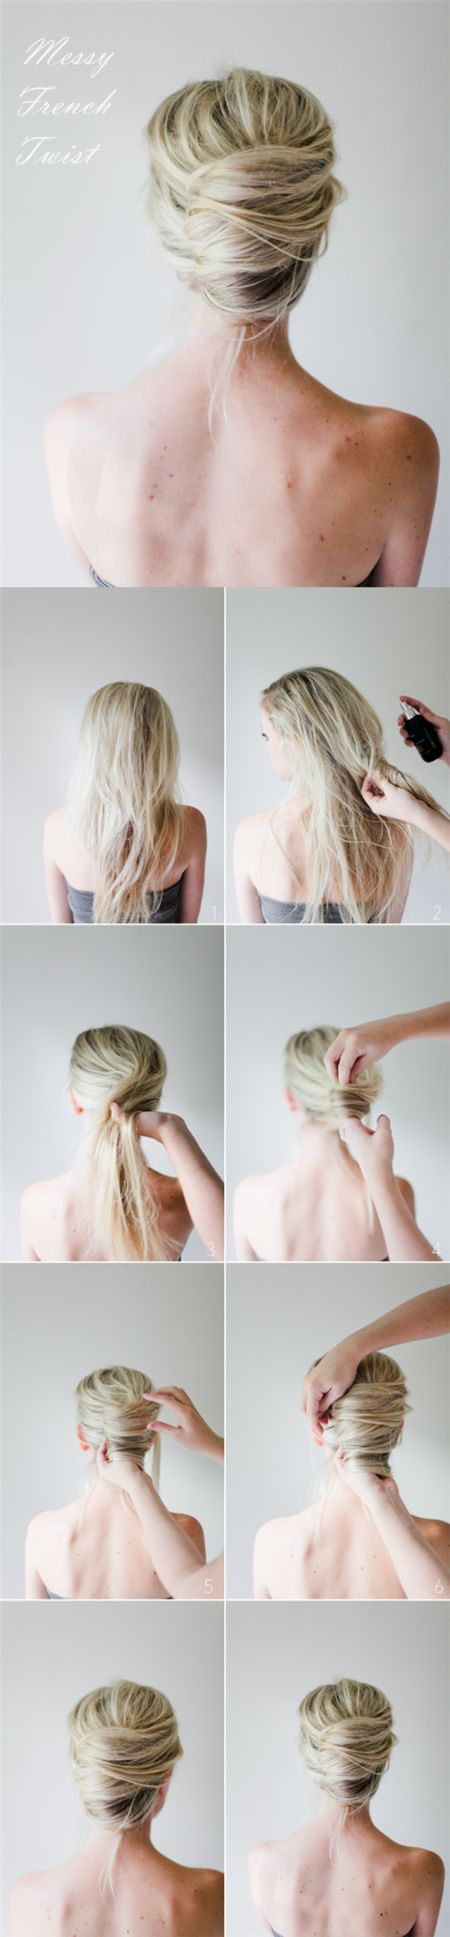 The best images about cute girly hairstyles on pinterest cas